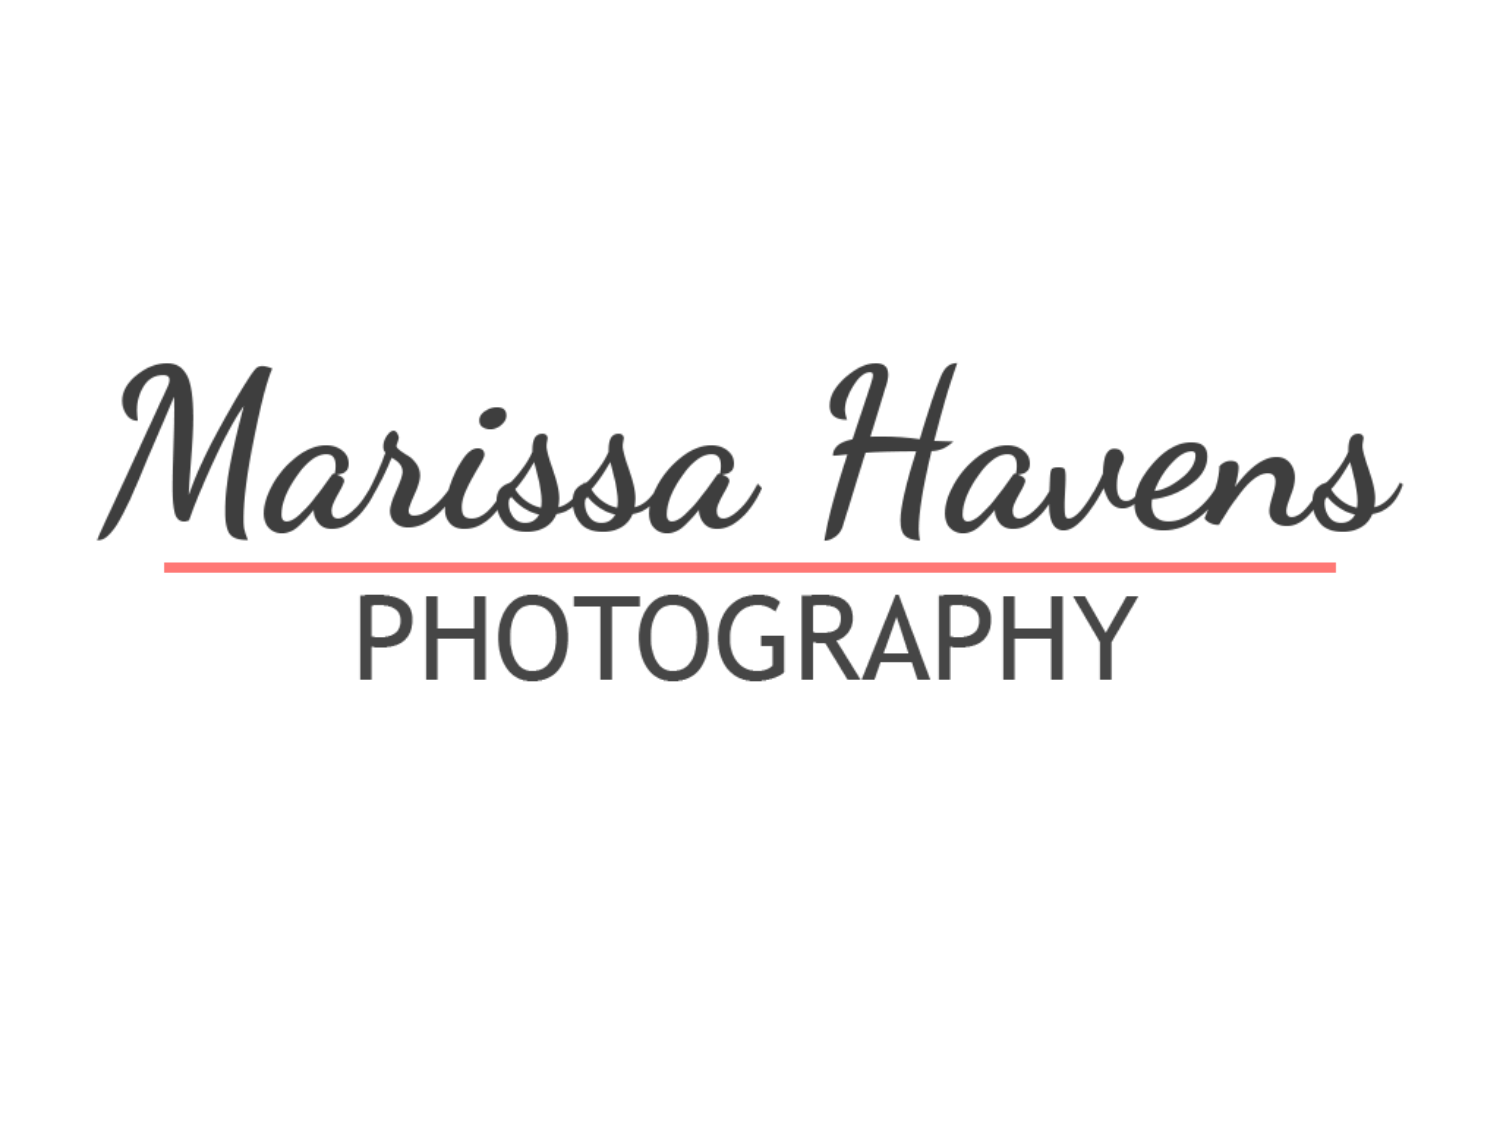 Marissa Havens Photography